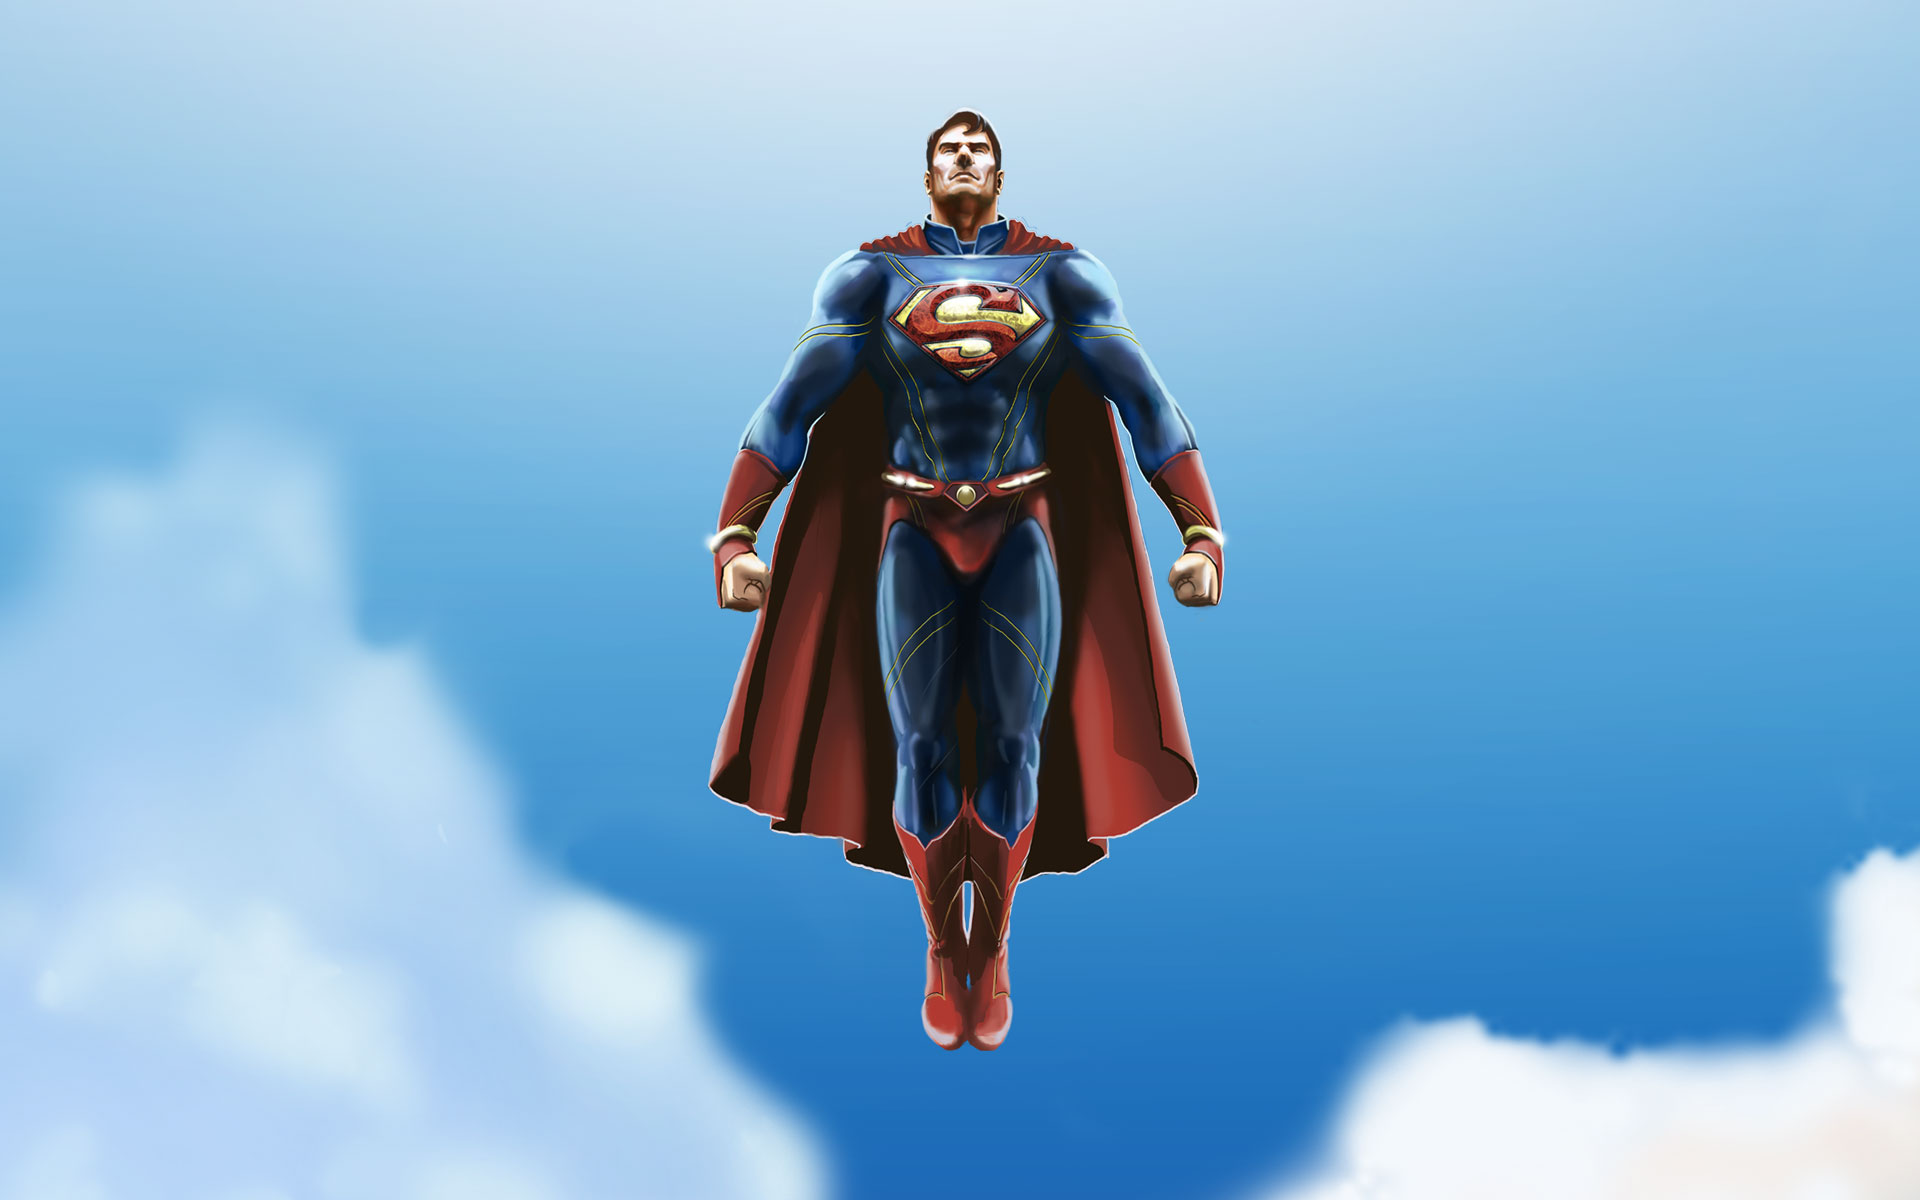 wallpapers are still related to wallpaper superman cartoon hd at the 1920x1200